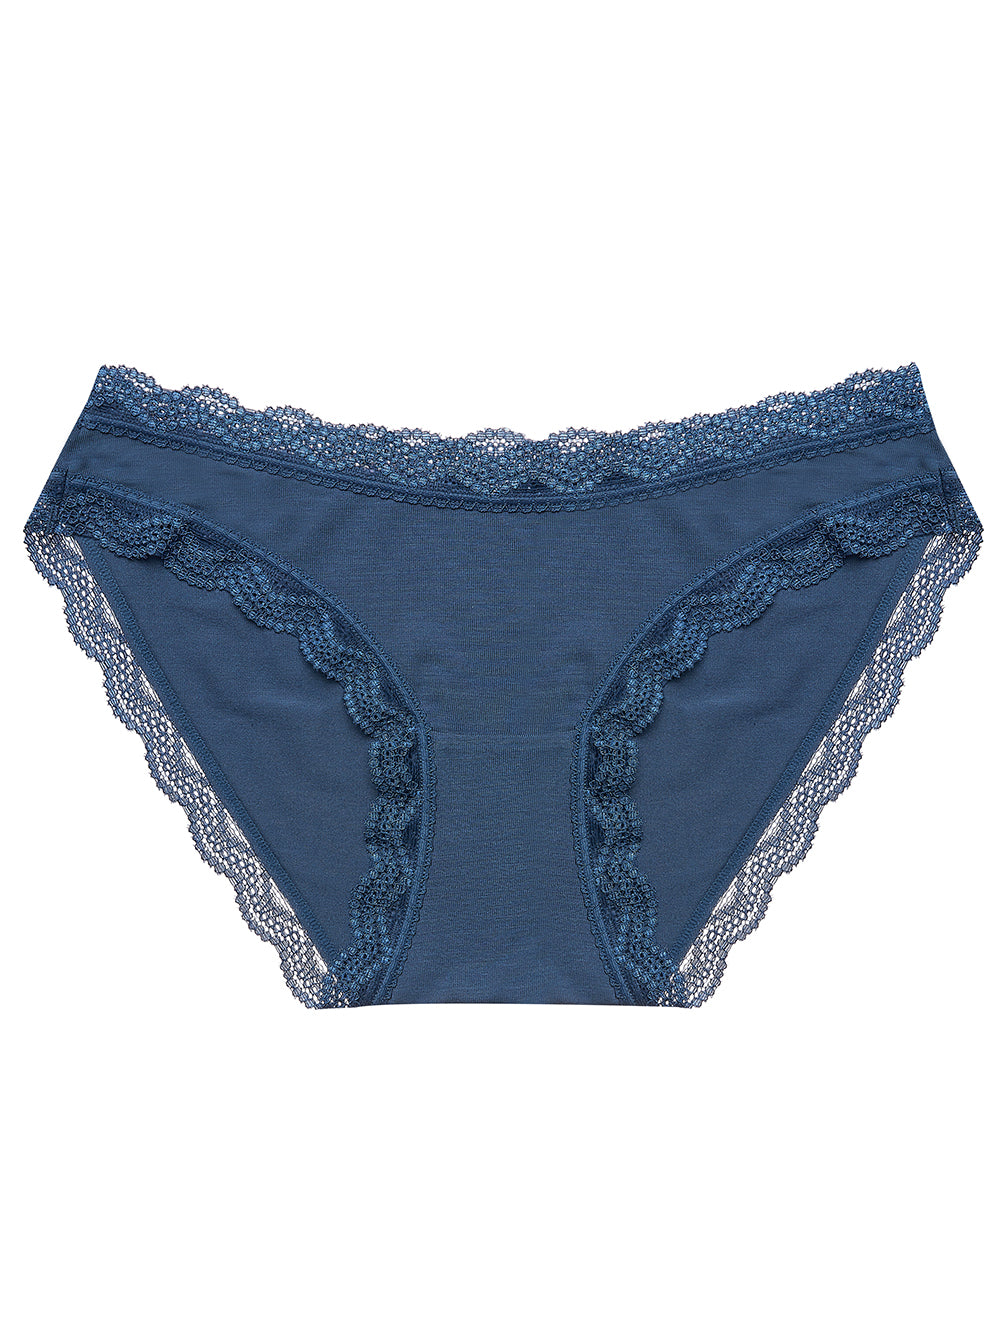 Dark Denim Essential Knicker